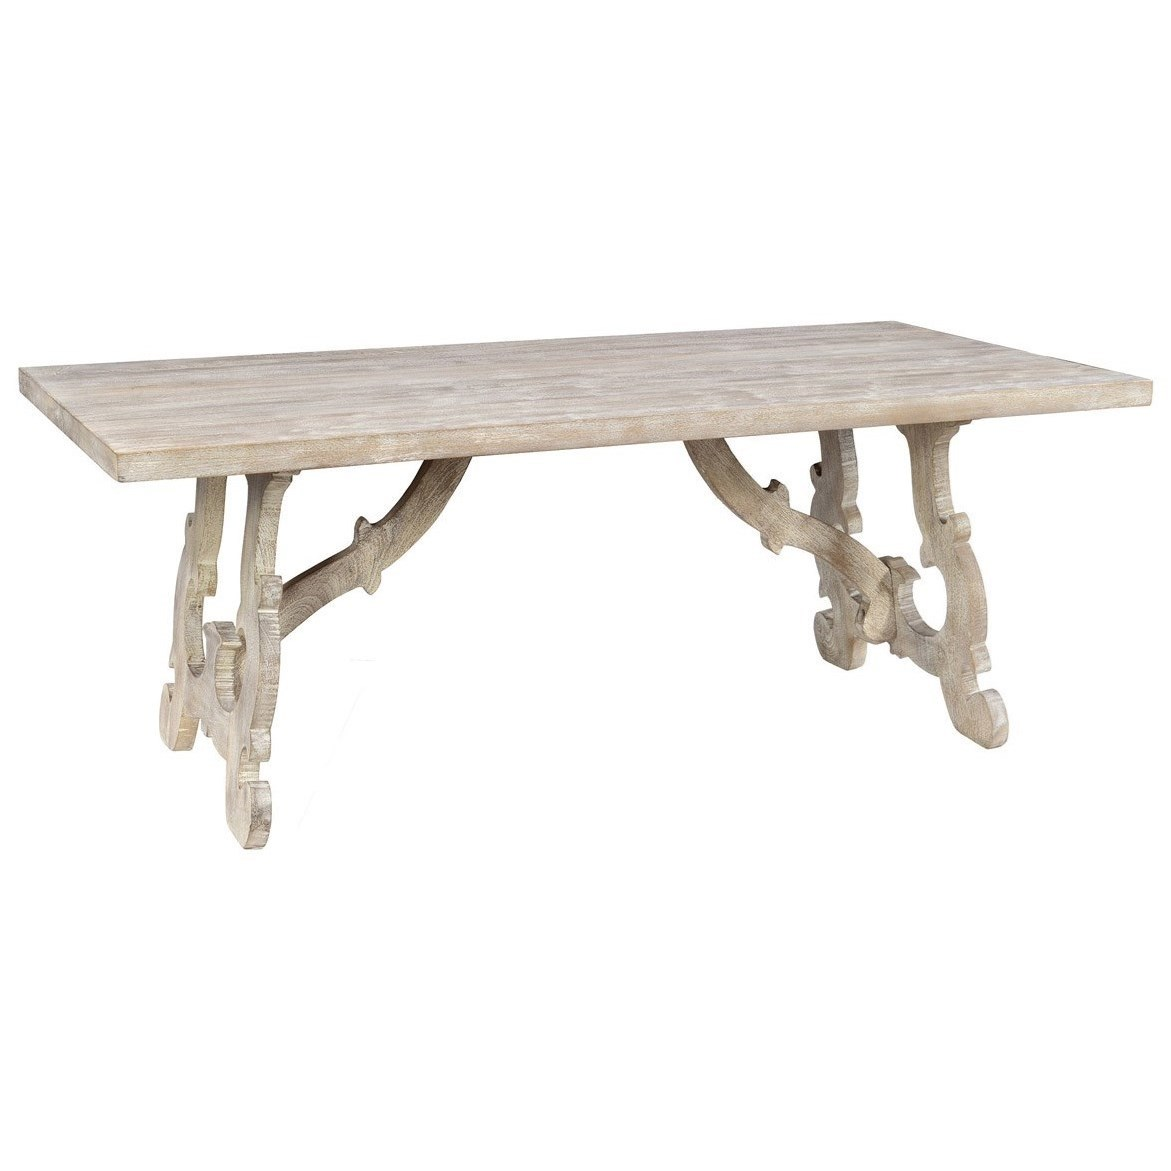 Classic home elena ch 51010555 rectangular transitional for Classic home tables